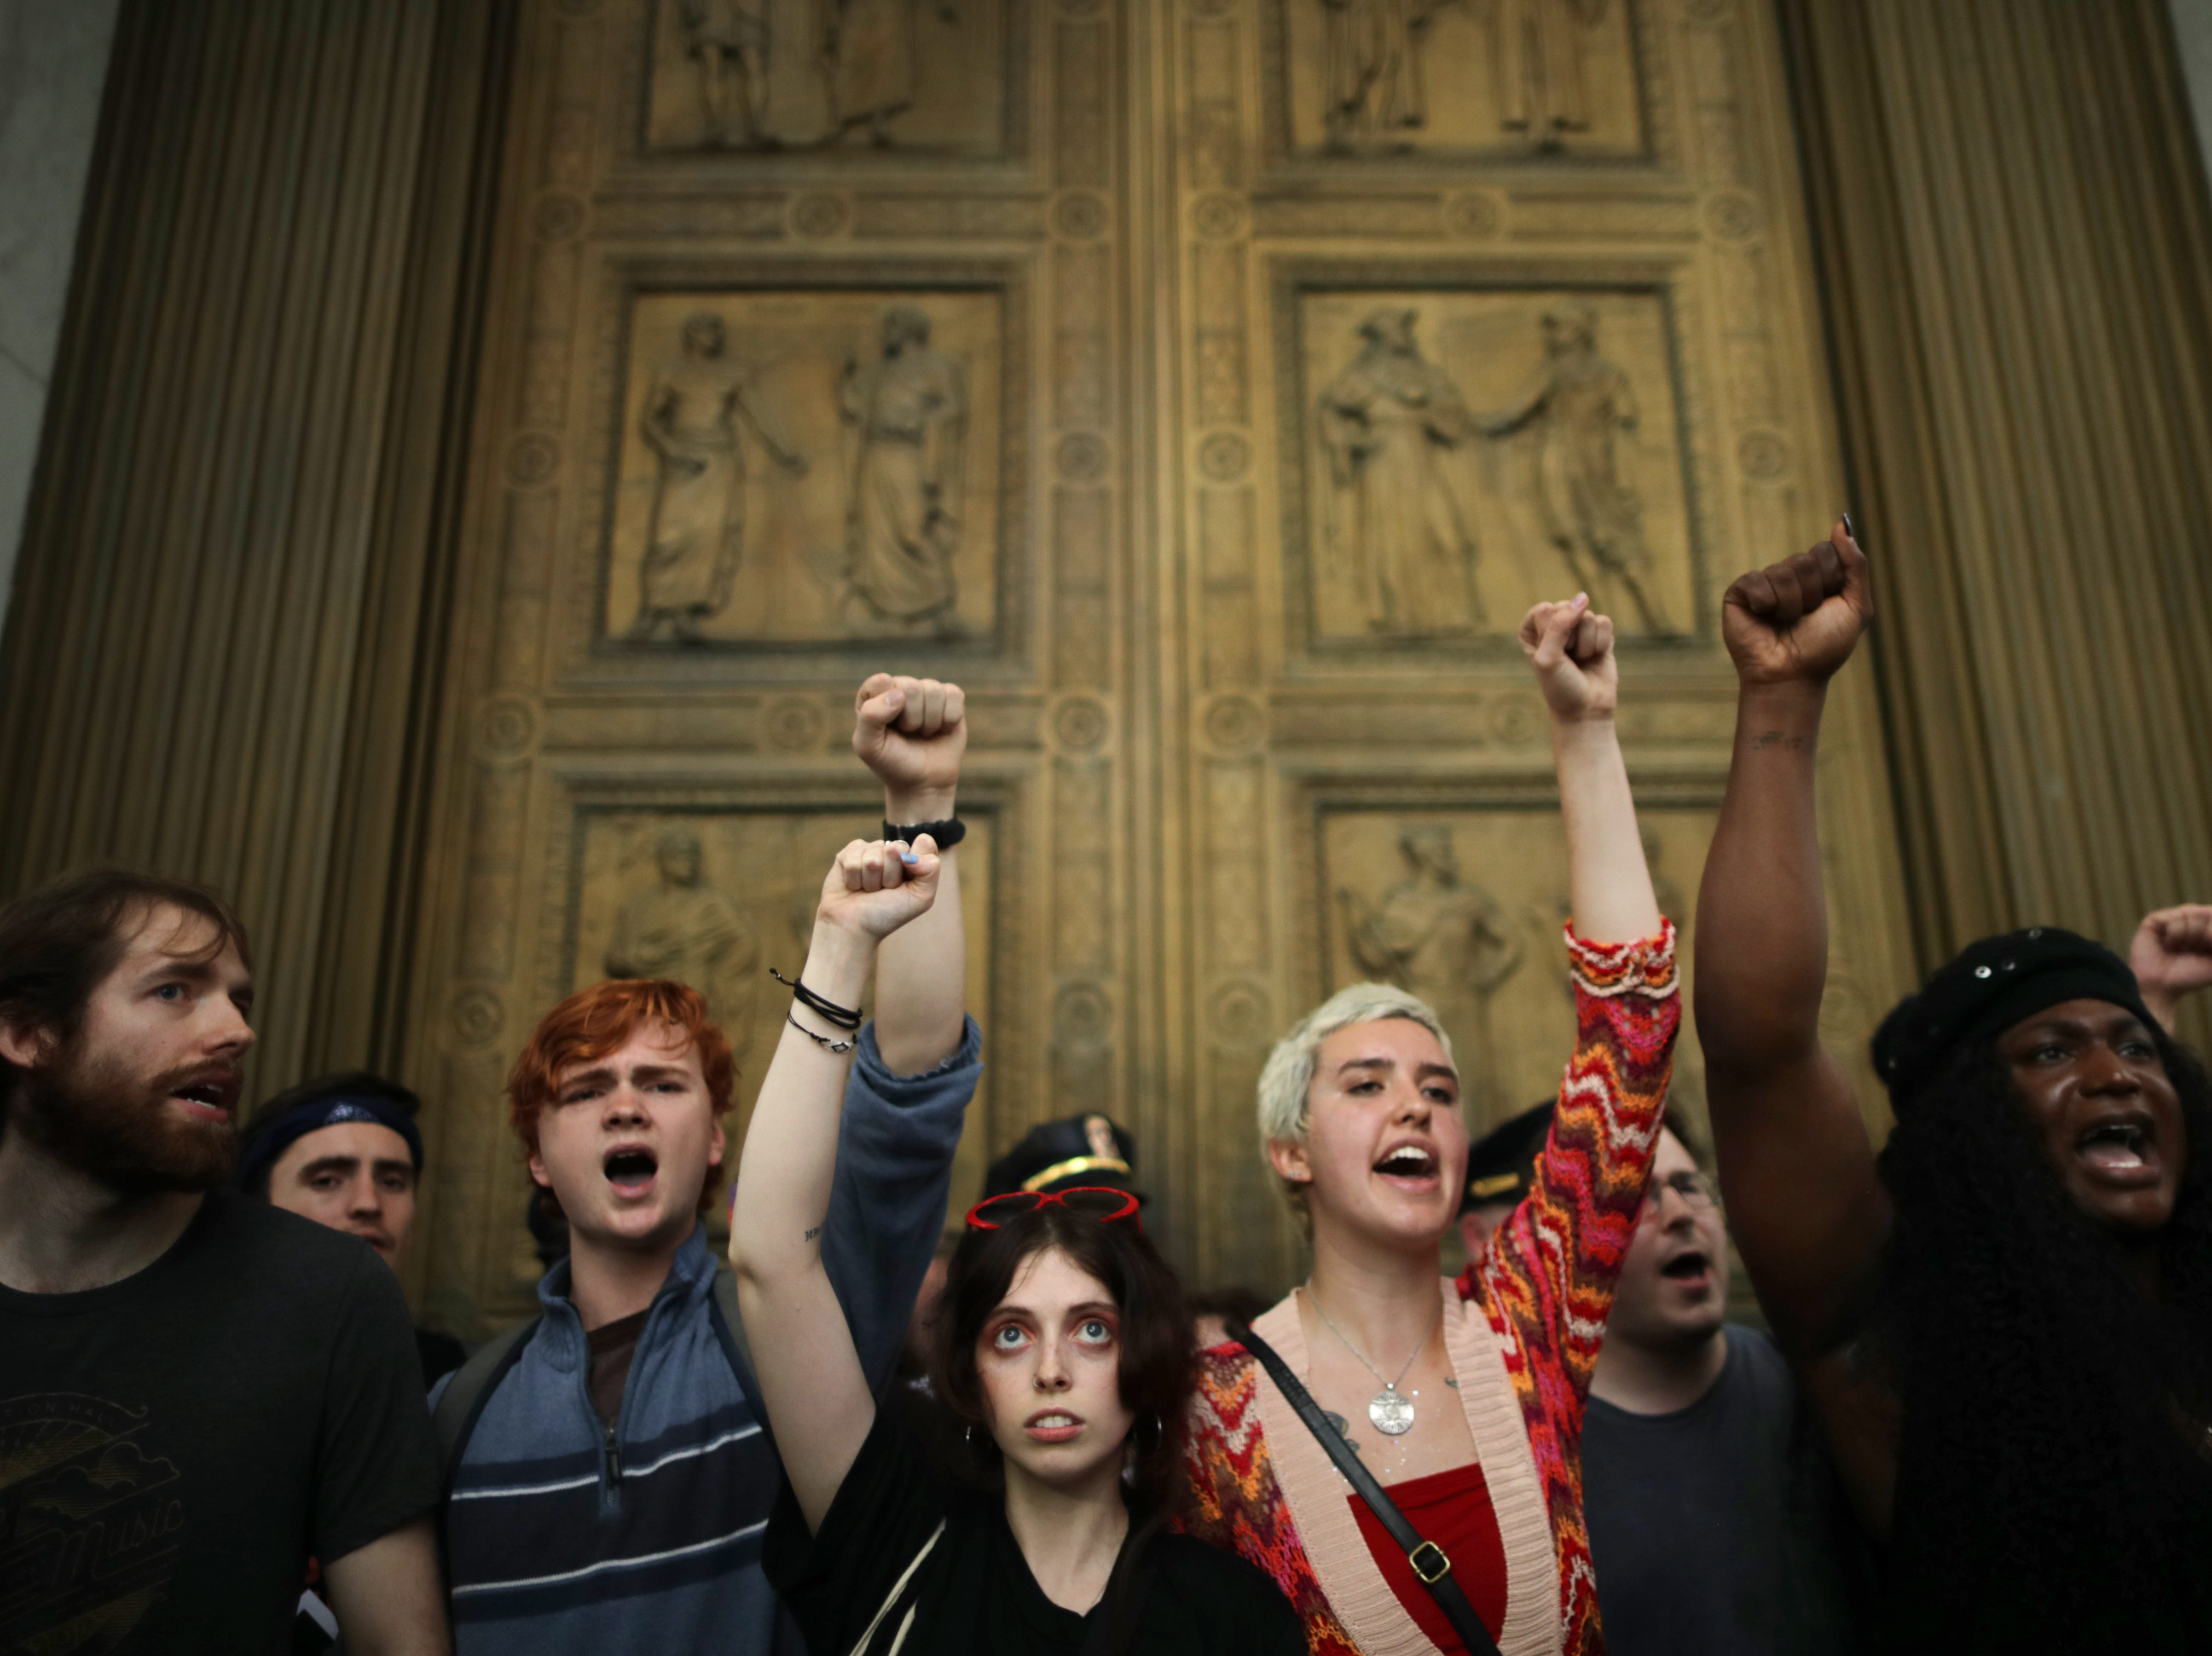 After overrunning police barricades, protesters chant as they block the doors to the U.S. Supreme Court while demonstrating against the confirmation of Associate Justice Brett Kavanaugh October 6, 2018, in Washington, D.C. The protesters marched up to the doors of the court as Kavanaugh was inside taking his oath.